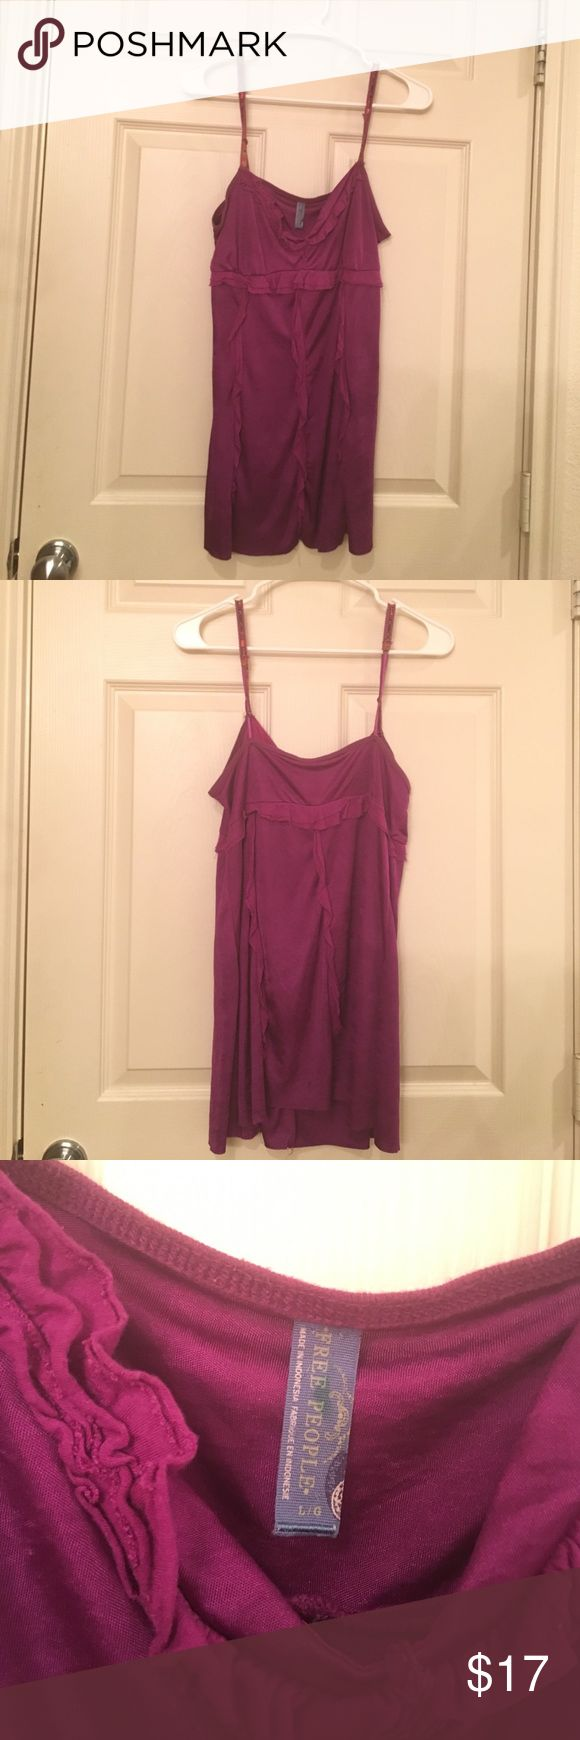 Ruffle tank Beautiful color, cute flower strap detail perfect dressy tank for summer. Free People Tops Tank Tops